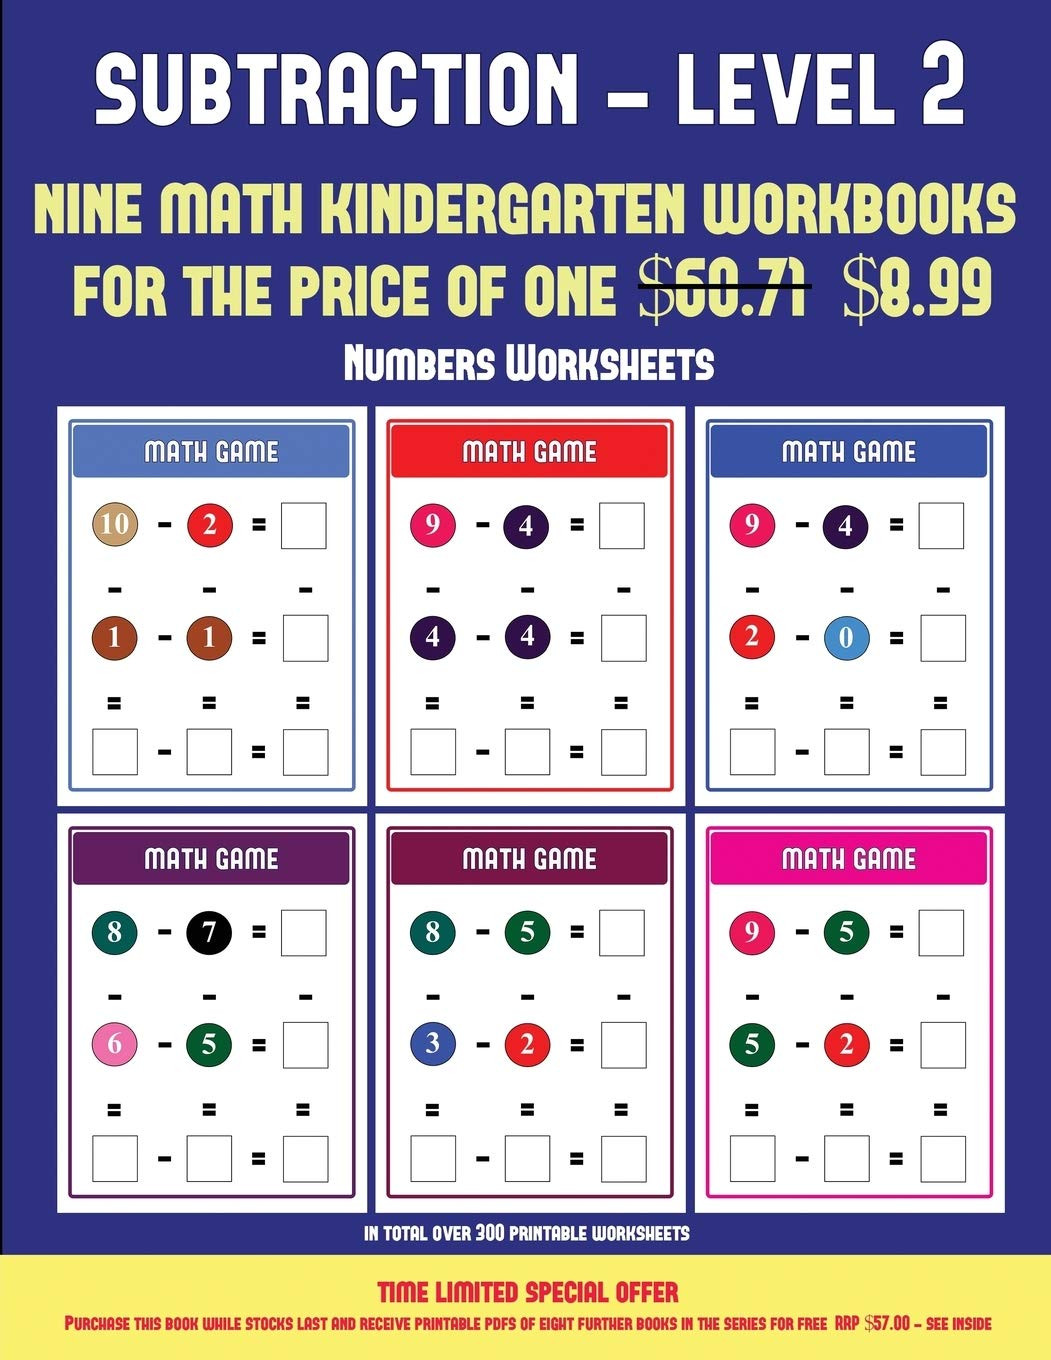 Kindergarten Subtraction Worksheets Free Printable Numbers Worksheets Kindergarten Subtraction Taking Away